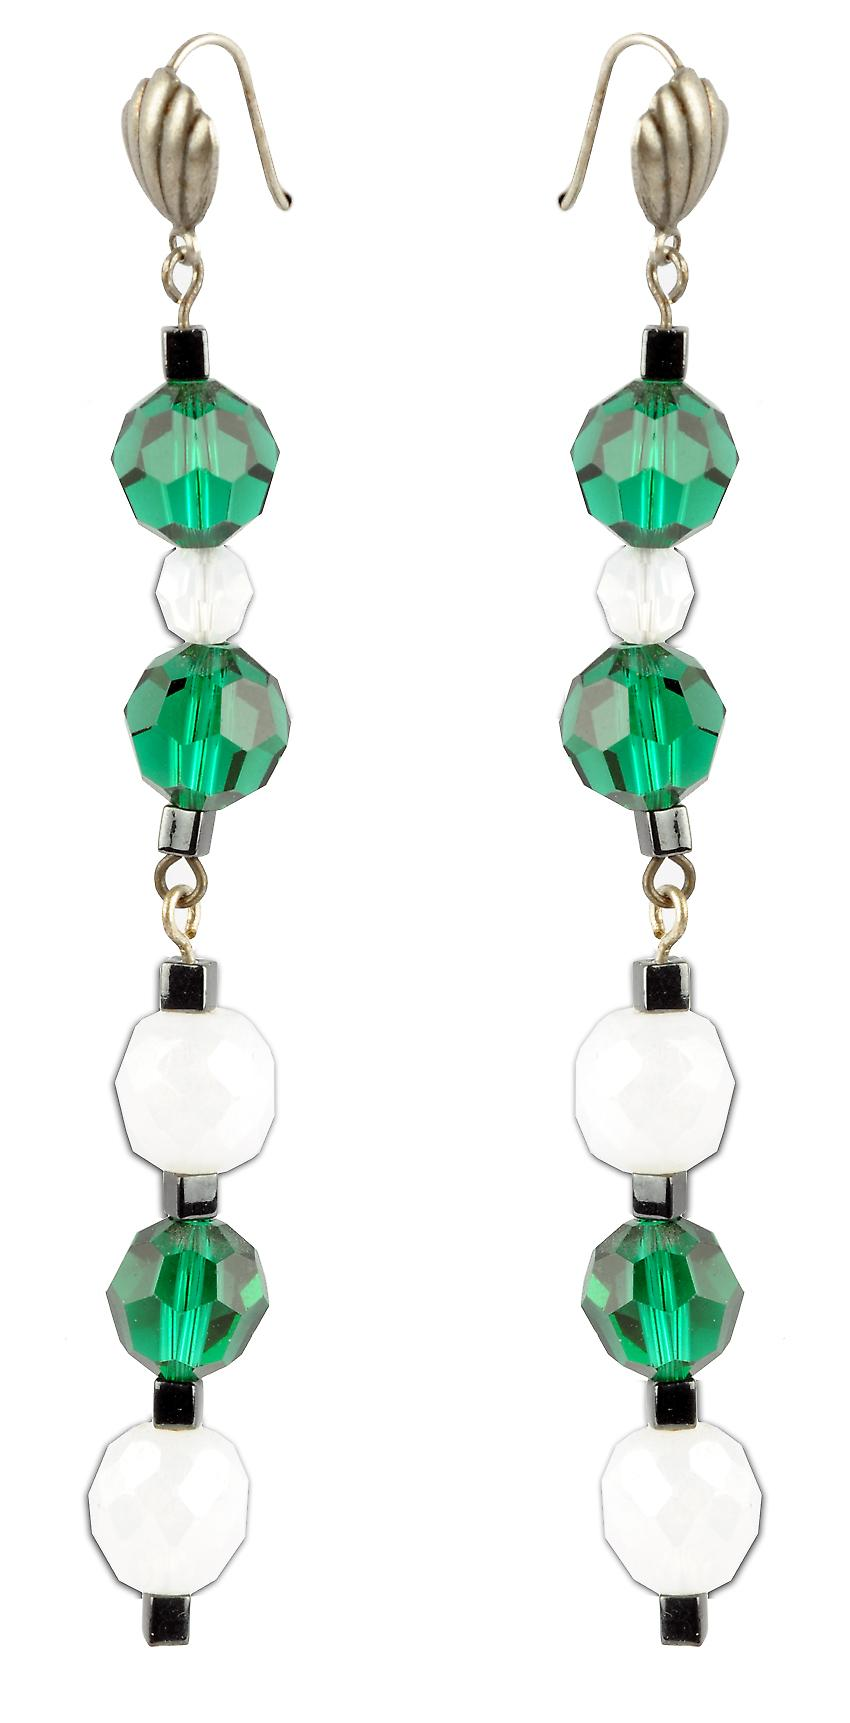 Waooh - jewelry - WJ0725 - earrings with Rhinestone Swarovski green white black - mount silver